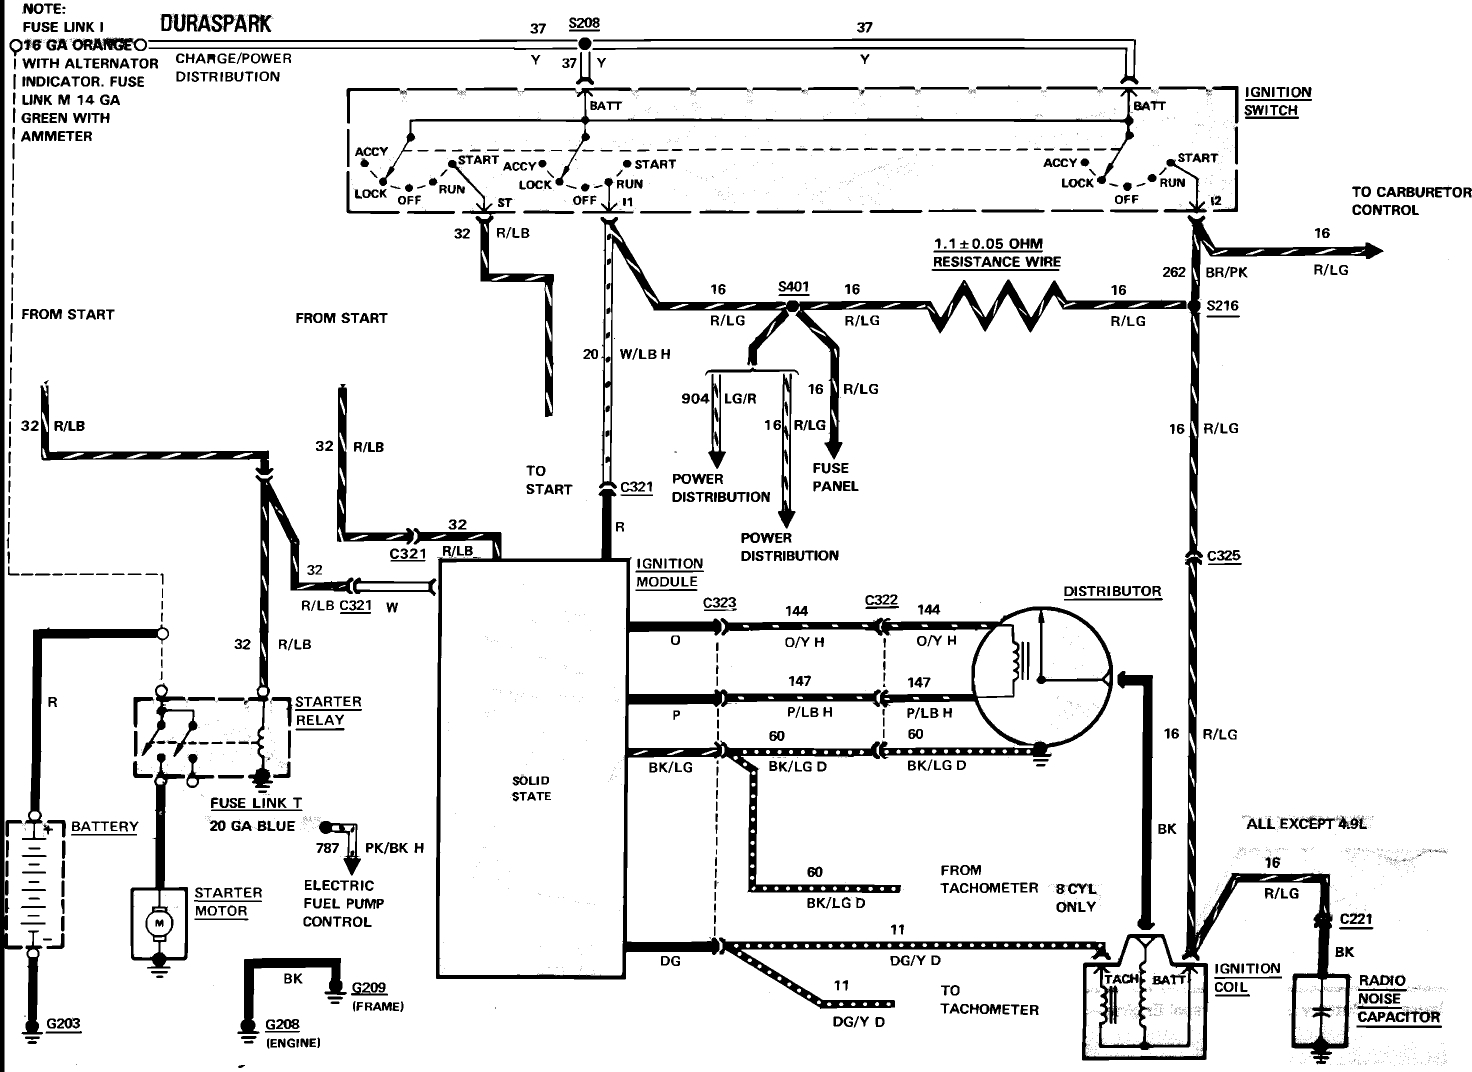 97 f150 radio wiring diagram